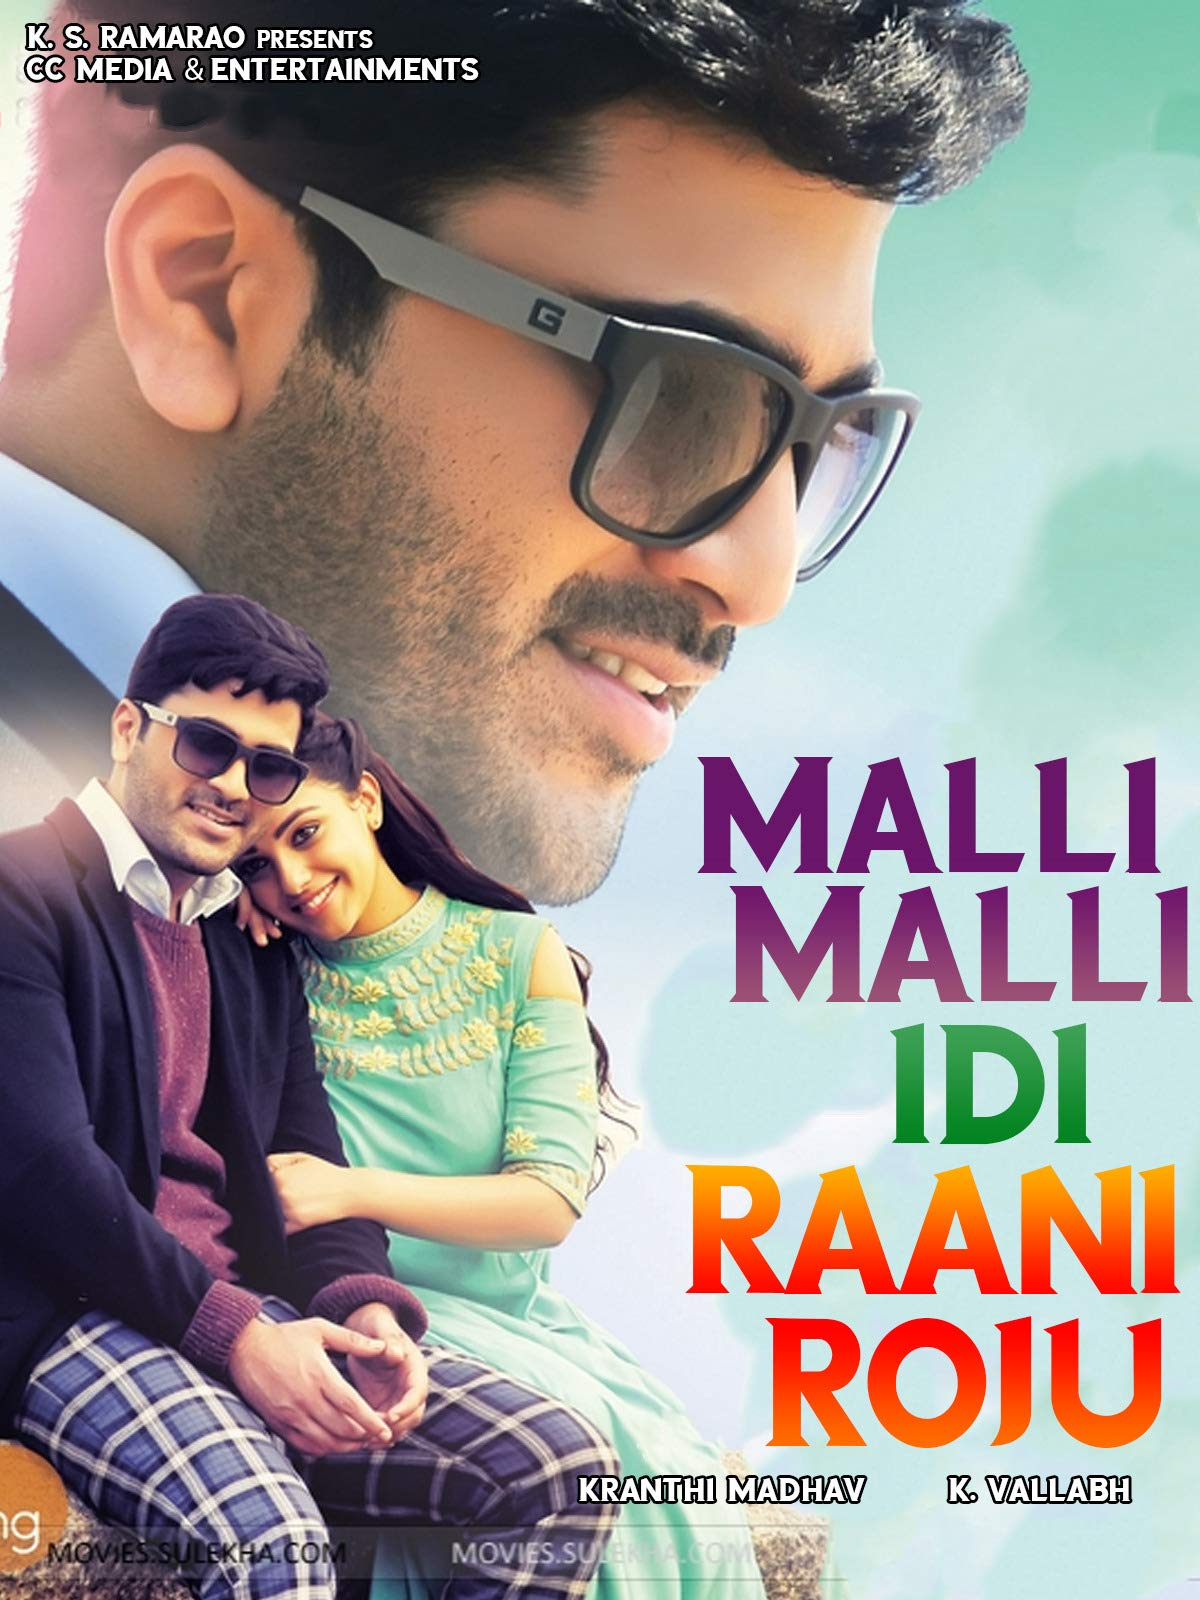 Malli Malli Idi Rani Roju (Real Diljala) 2020 Hindi Dual Audio 480p UNCUT HDRip 400MB x264 AAC